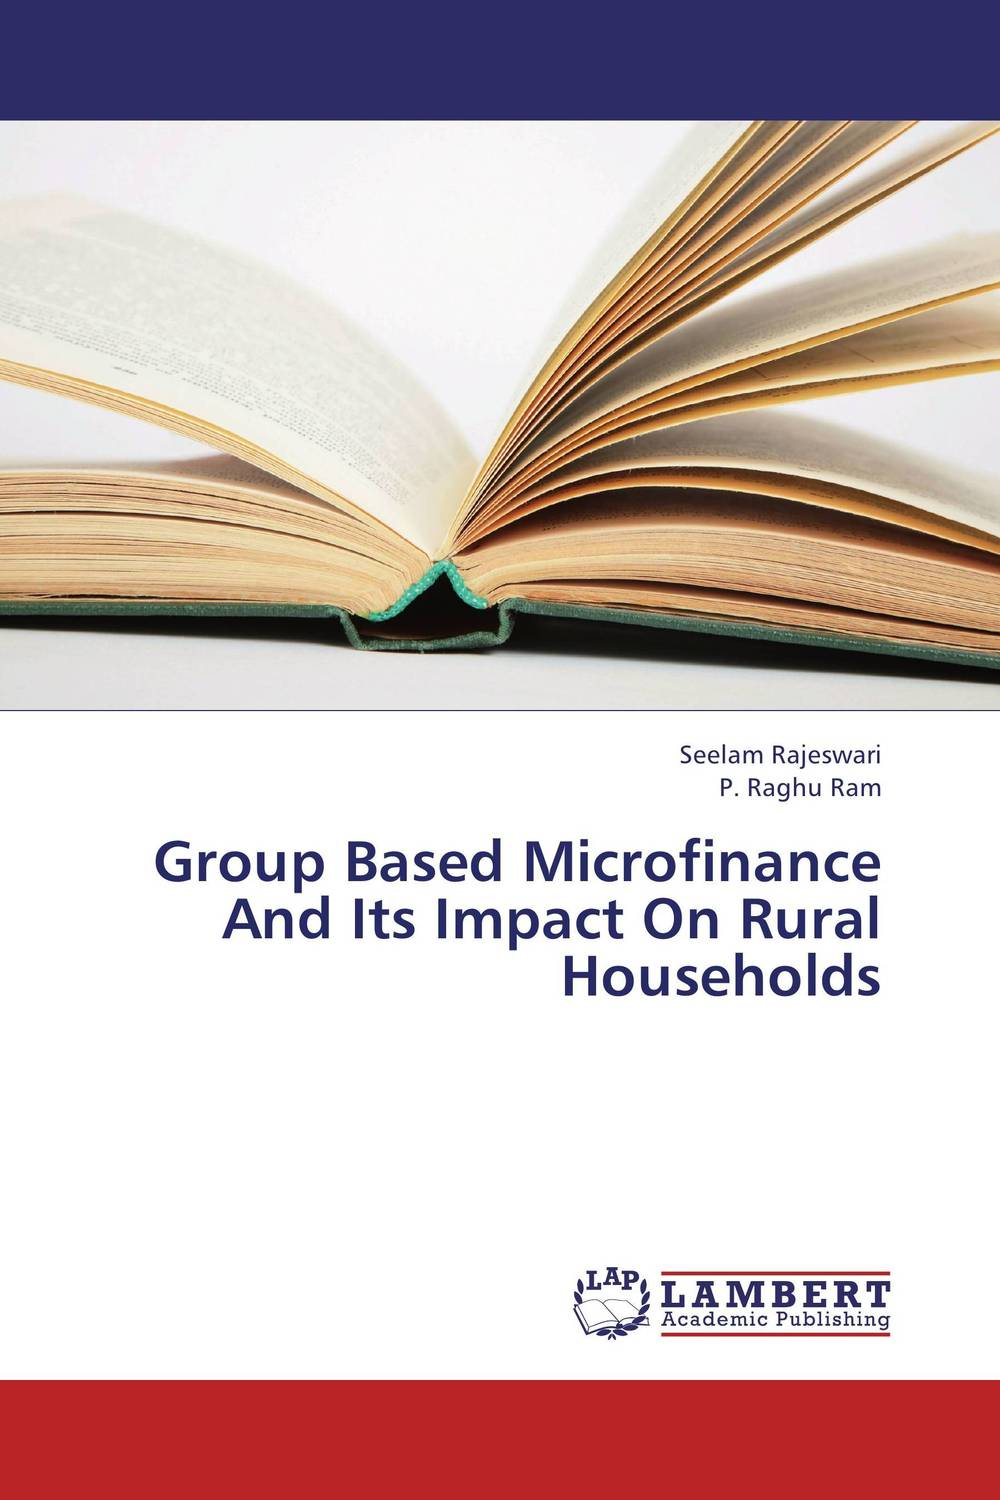 Group Based Microfinance And Its Impact On Rural Households майка gap gap 15